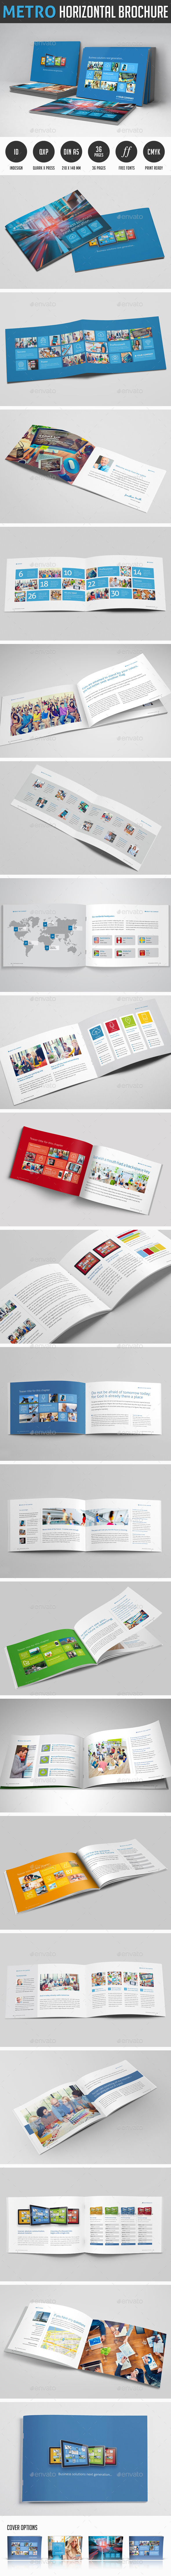 Metro horizontal Brochure - Corporate Brochures